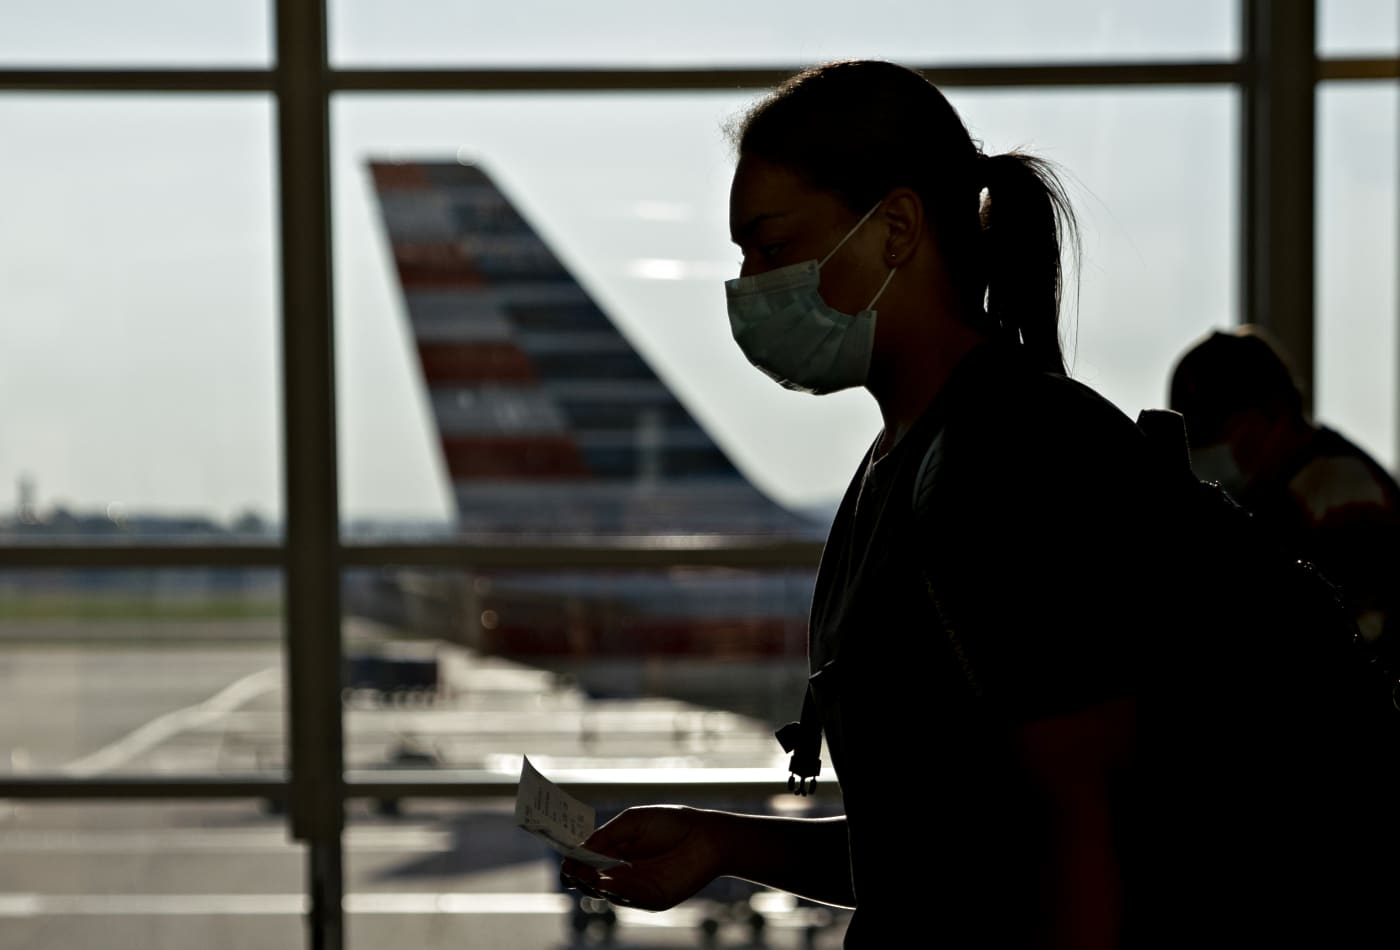 American Airlines to cut 19,000 jobs when federal aid expires in October